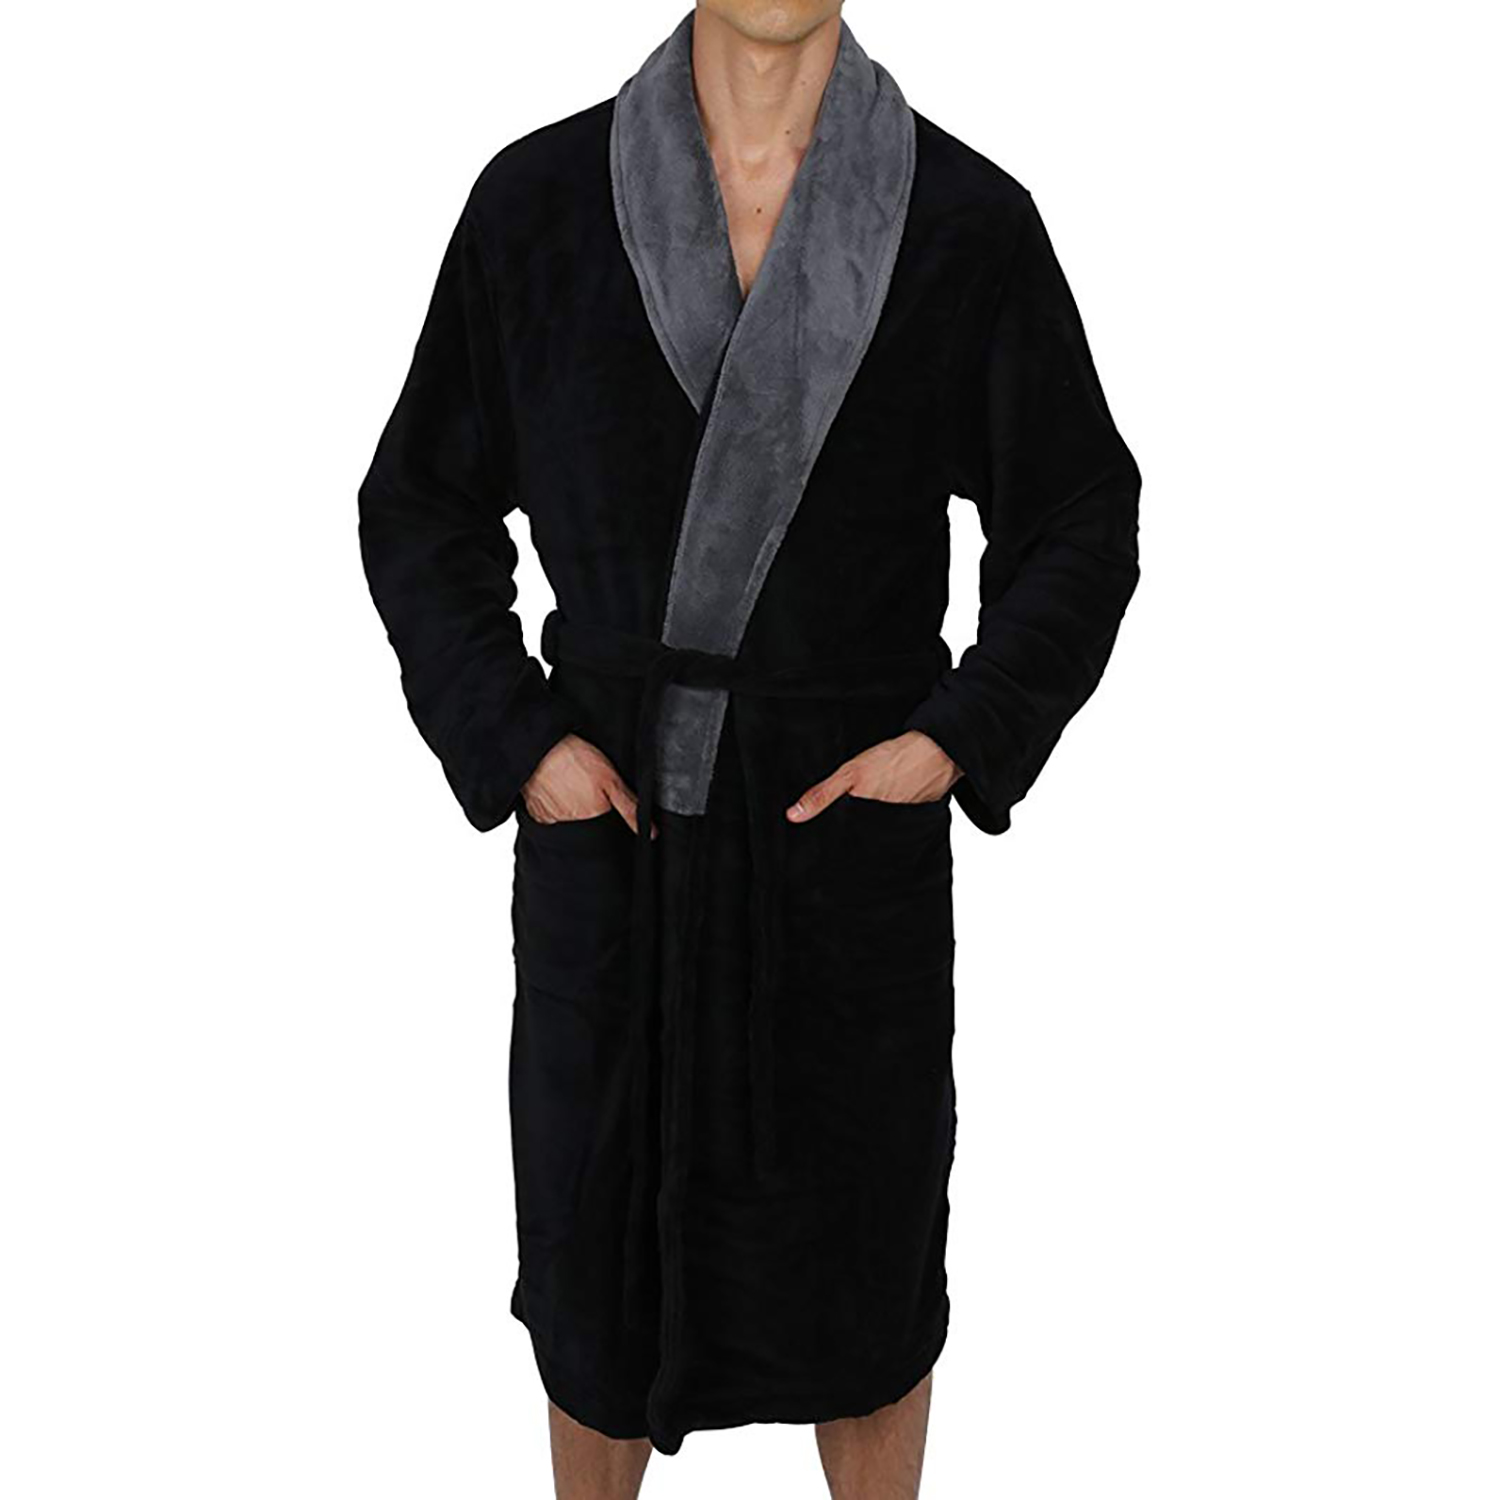 Unique Gifts for Men for Christmas: Spa Bathrobe